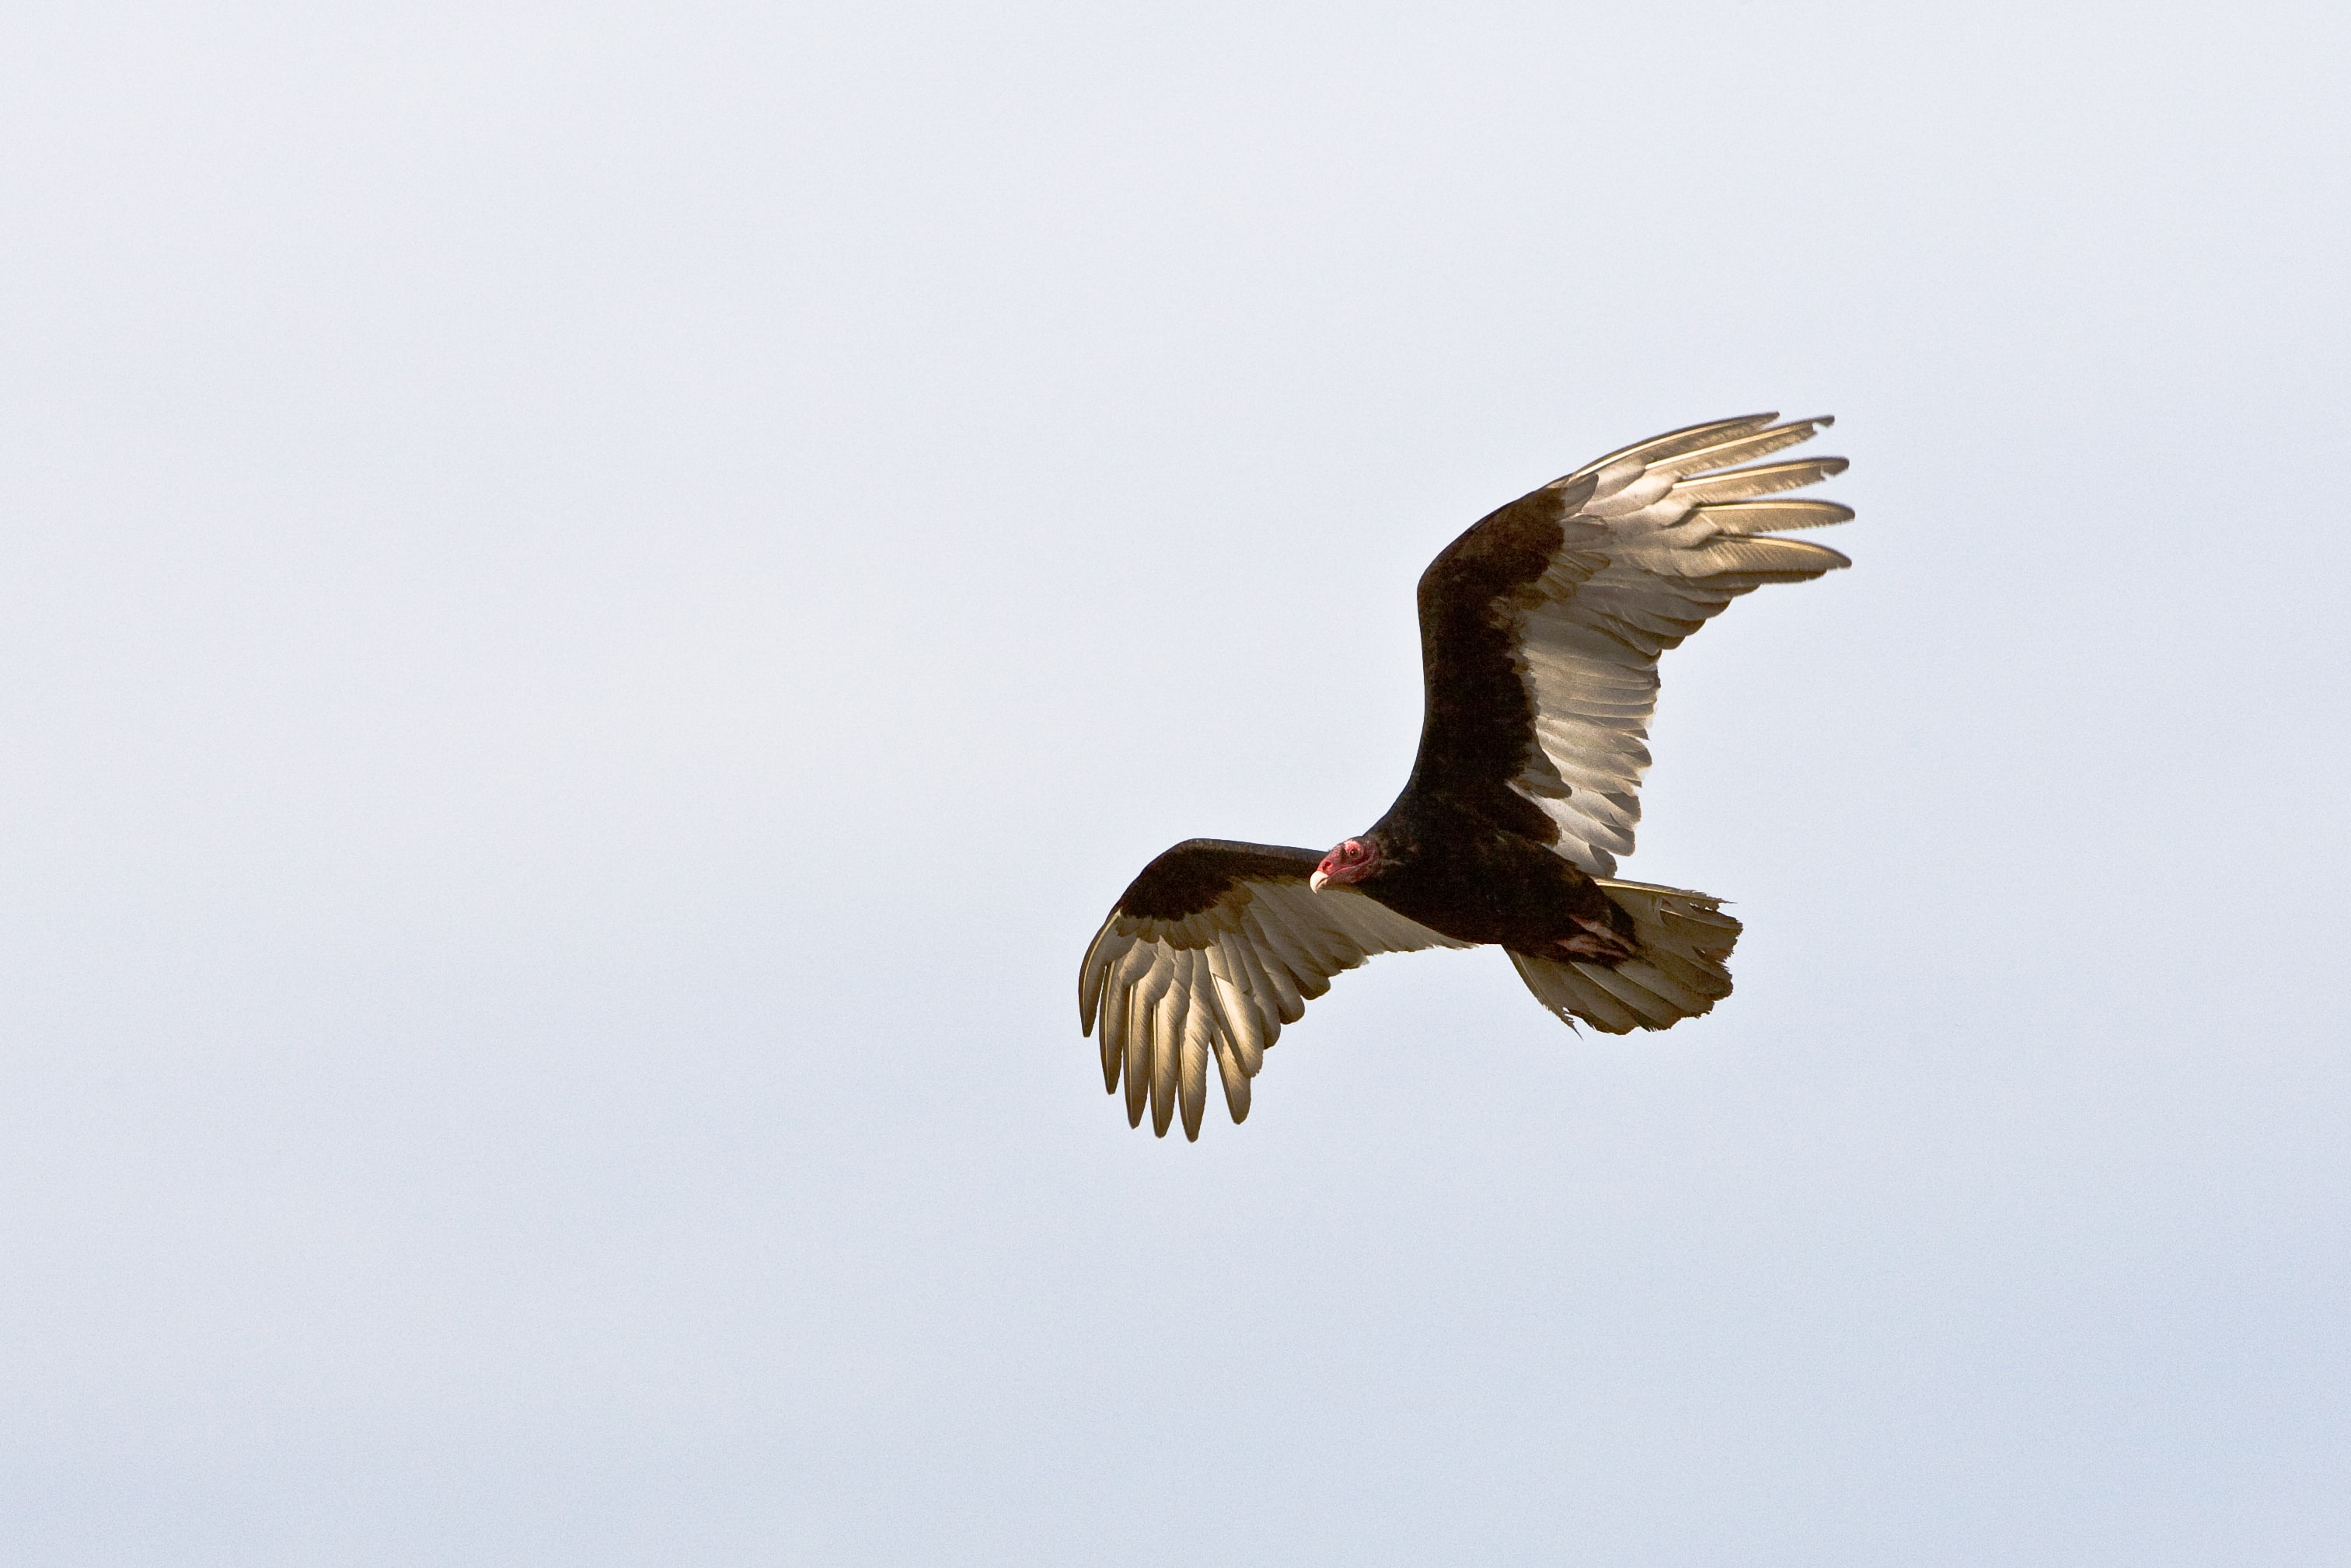 black and brown eagle on flight